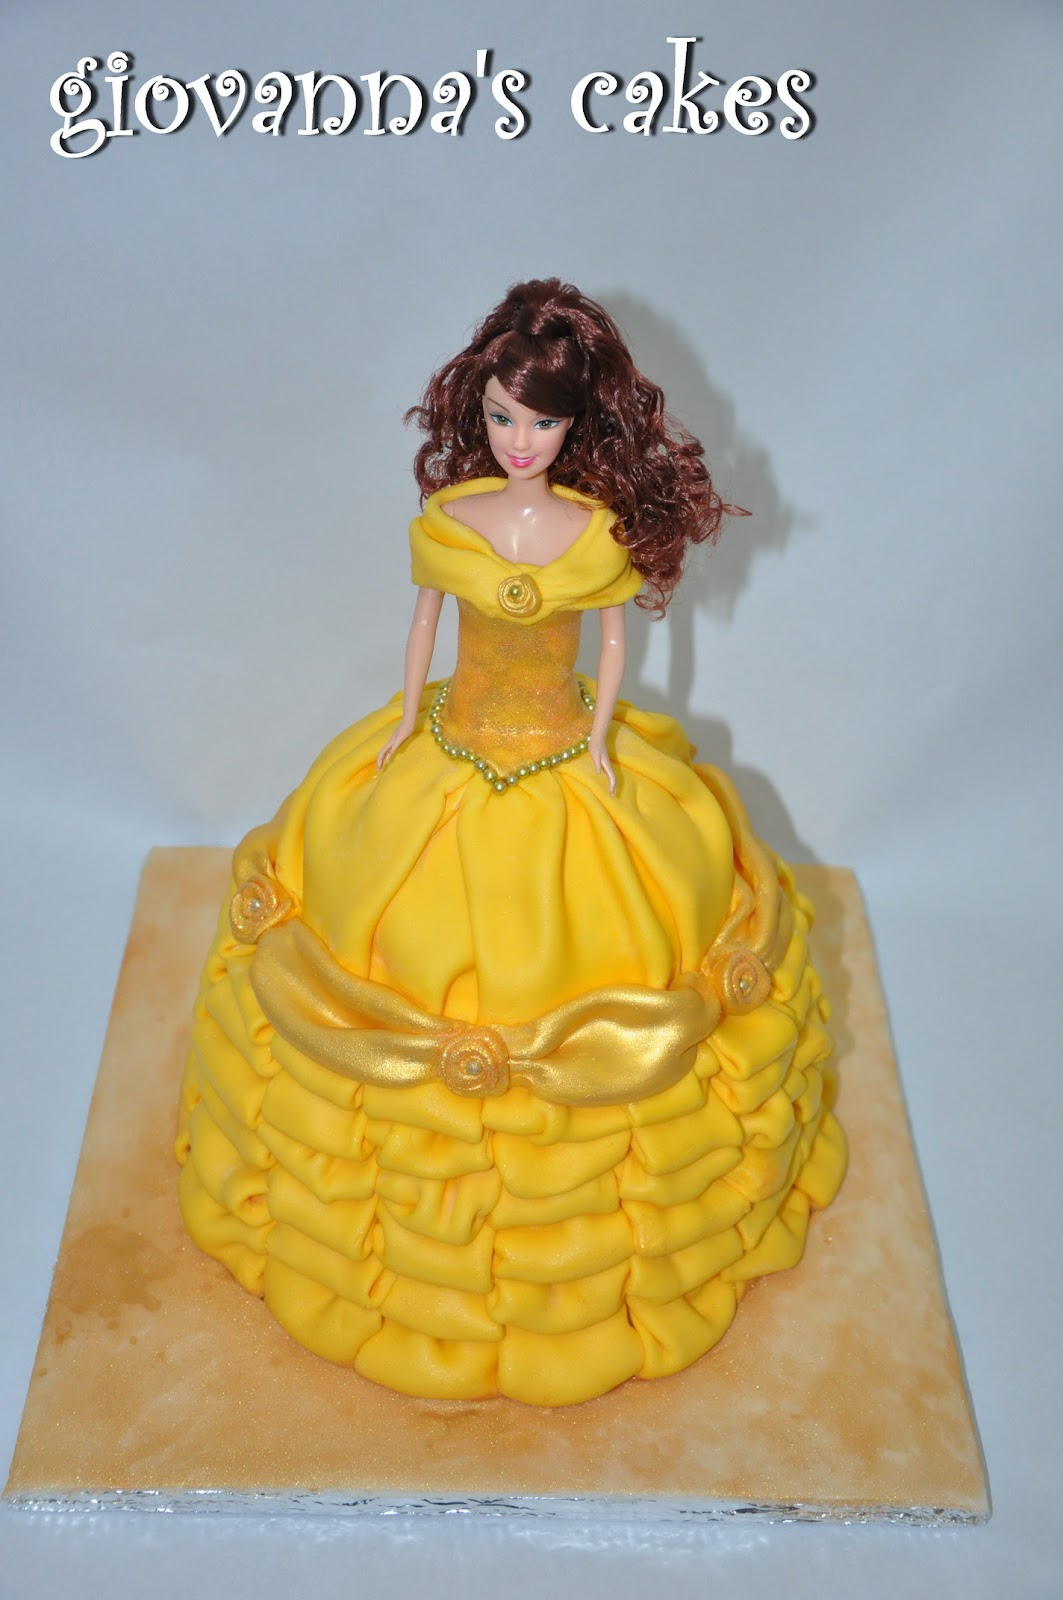 giovannas cakes introducing my most beautiful Belle doll cake